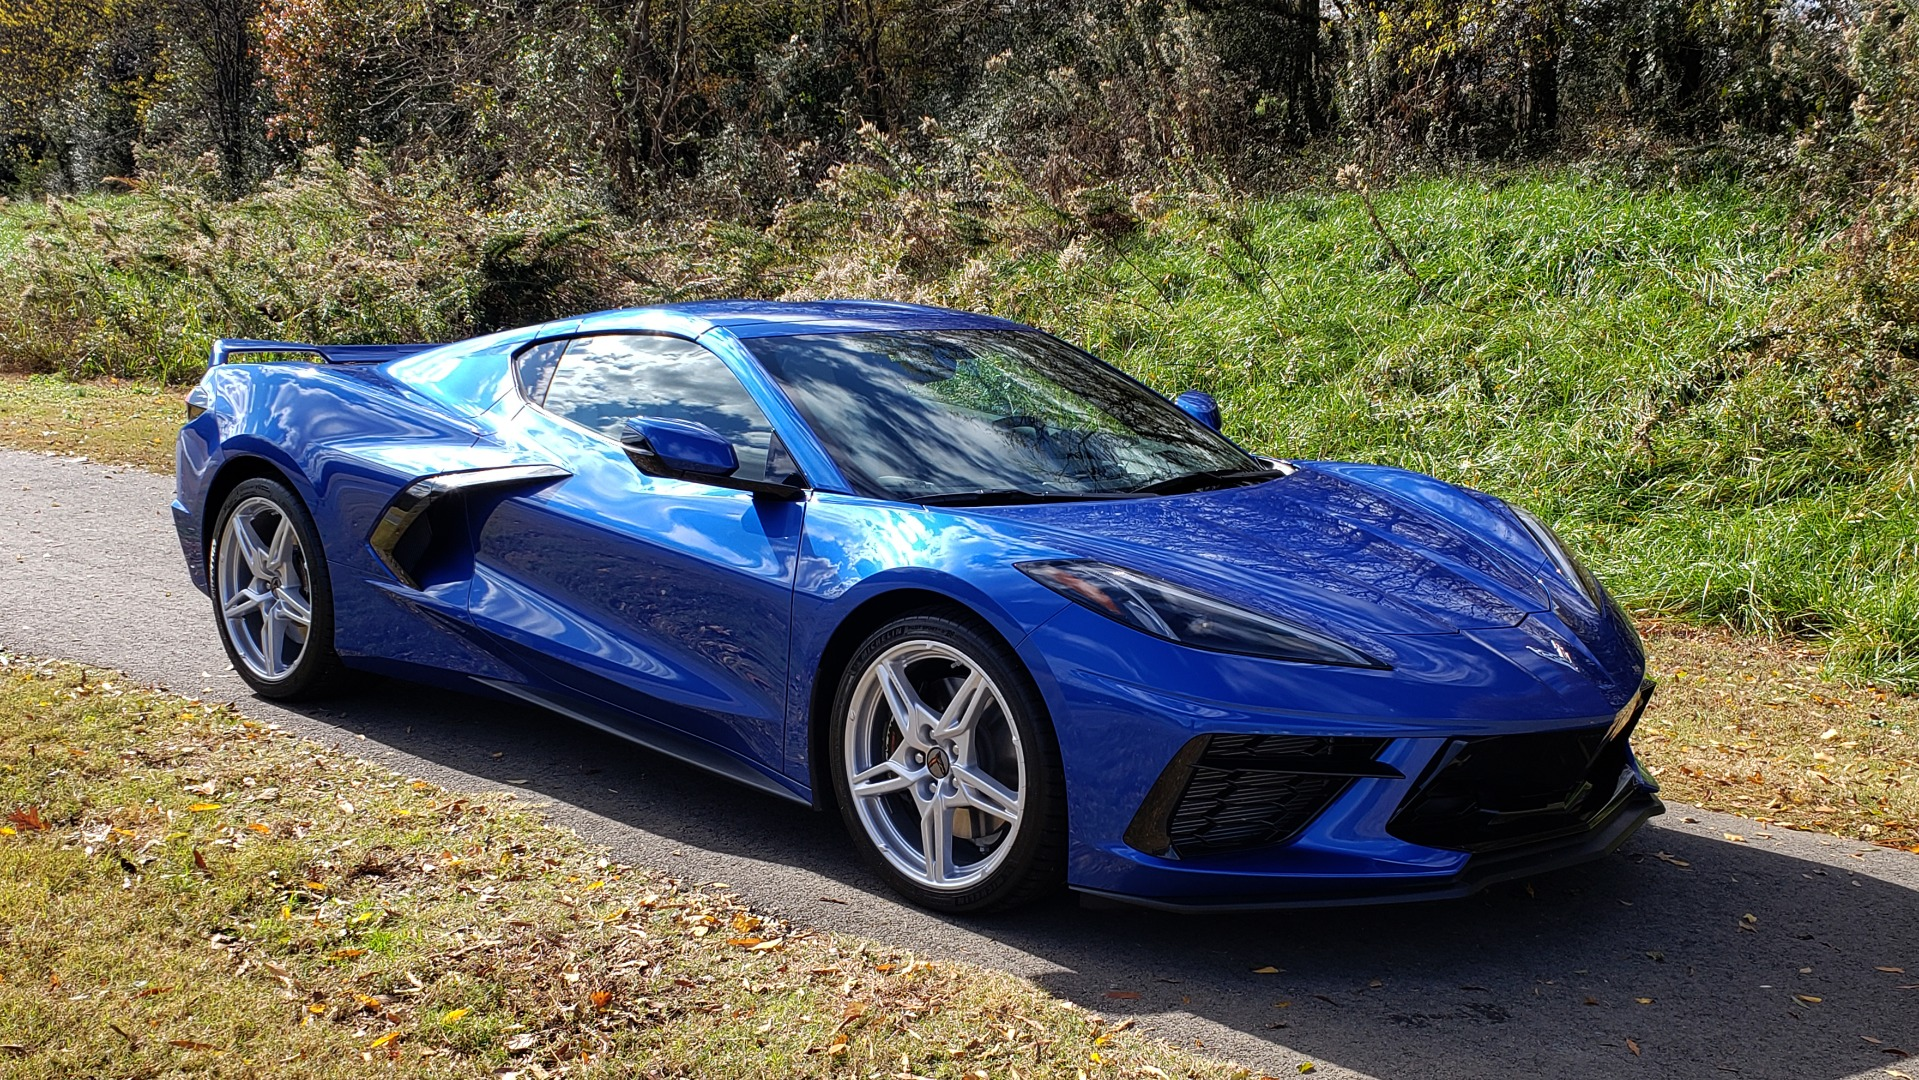 Used 2020 Chevrolet C8 CORVETTE STINGRAY 2LT COUPE / NAV / HUD / BOSE / GT2 SEATS / FRONT LIFT / REARVIEW for sale $98,999 at Formula Imports in Charlotte NC 28227 12